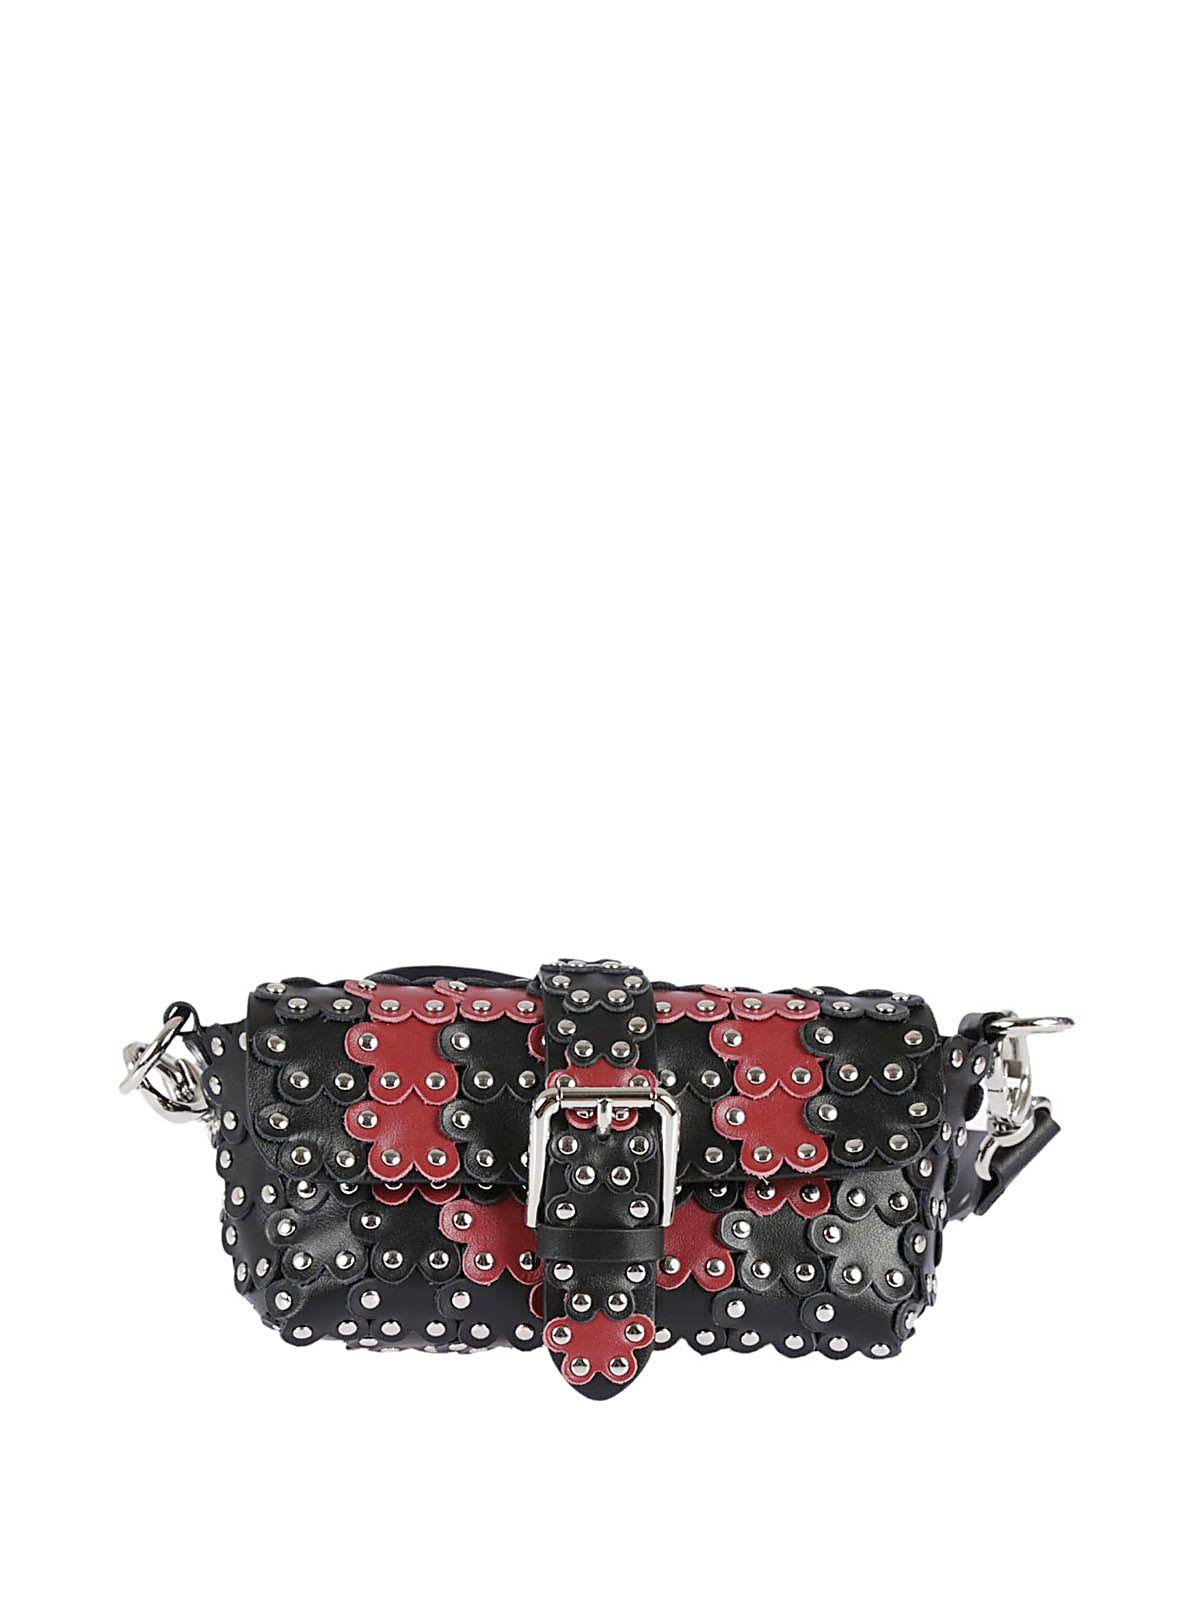 Red Valentino Studded Shoulder Bag In Nero-lacca